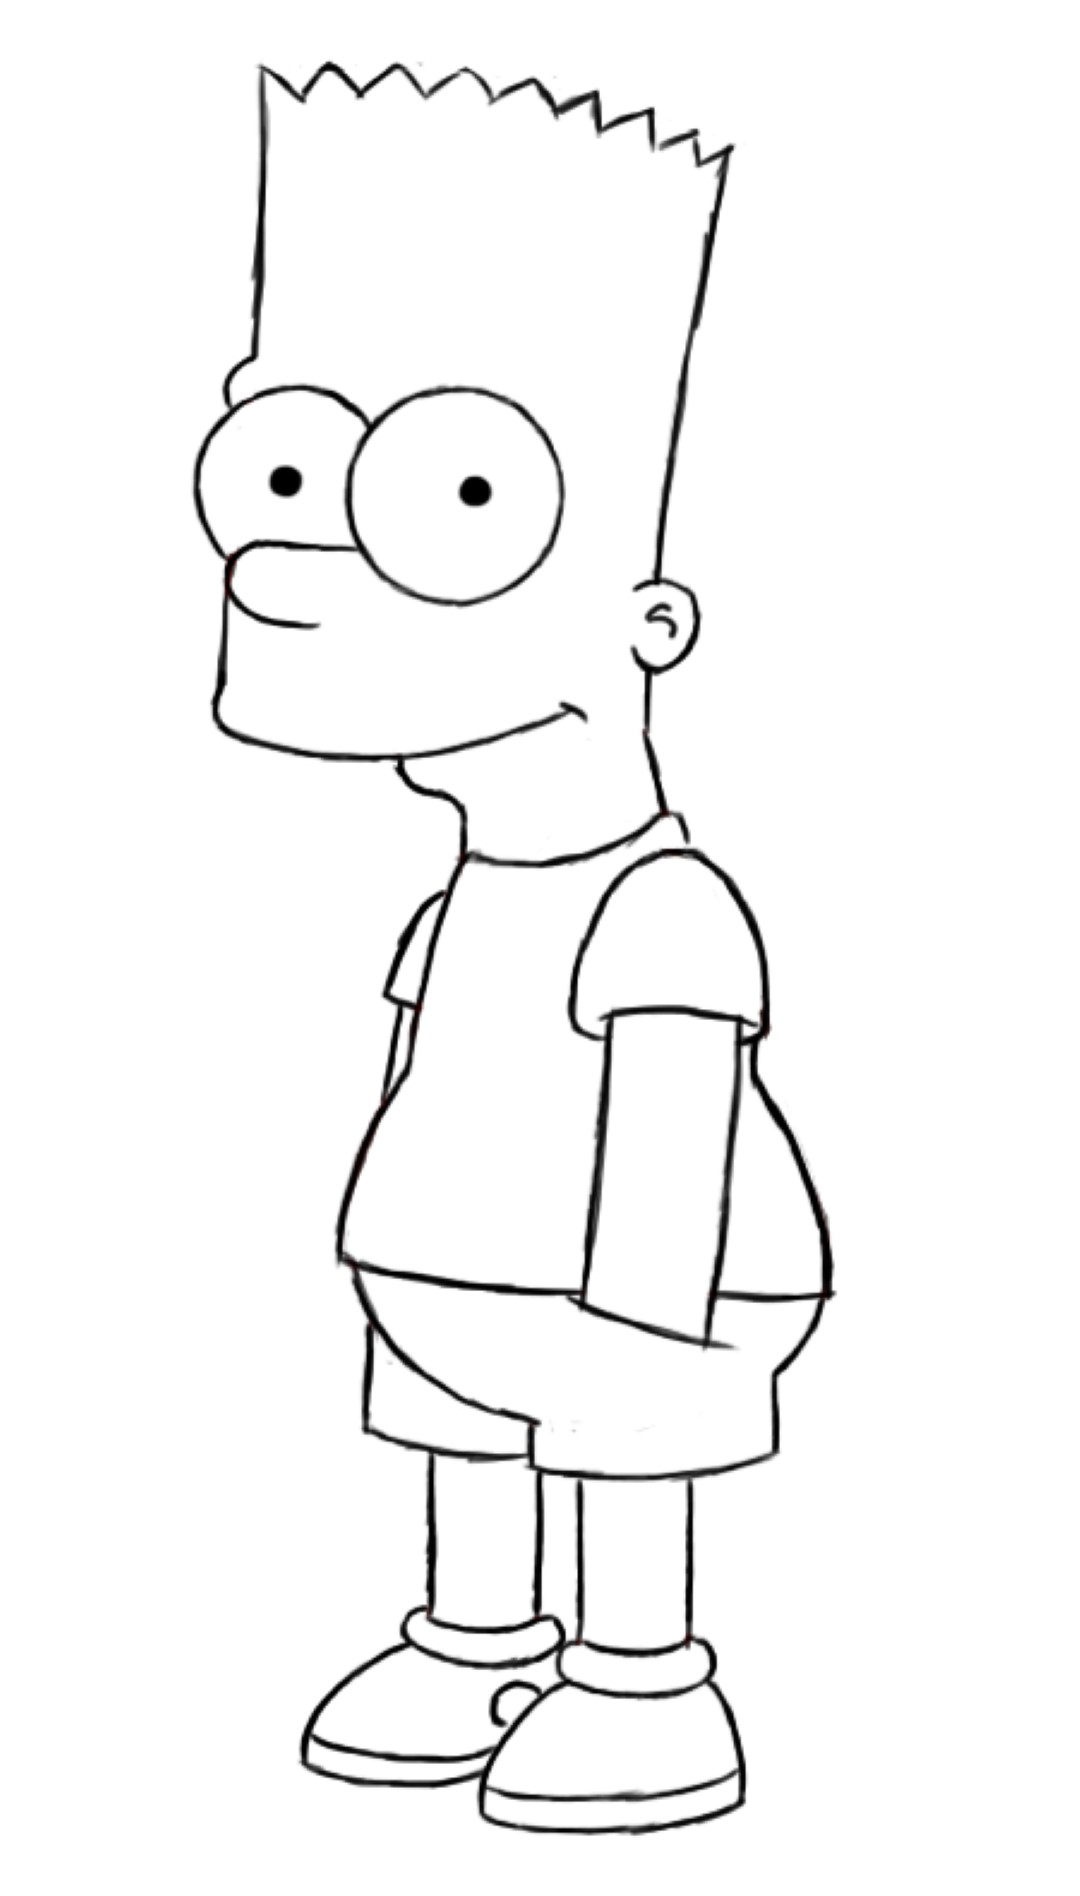 bart simpson drawings sketch coloring page